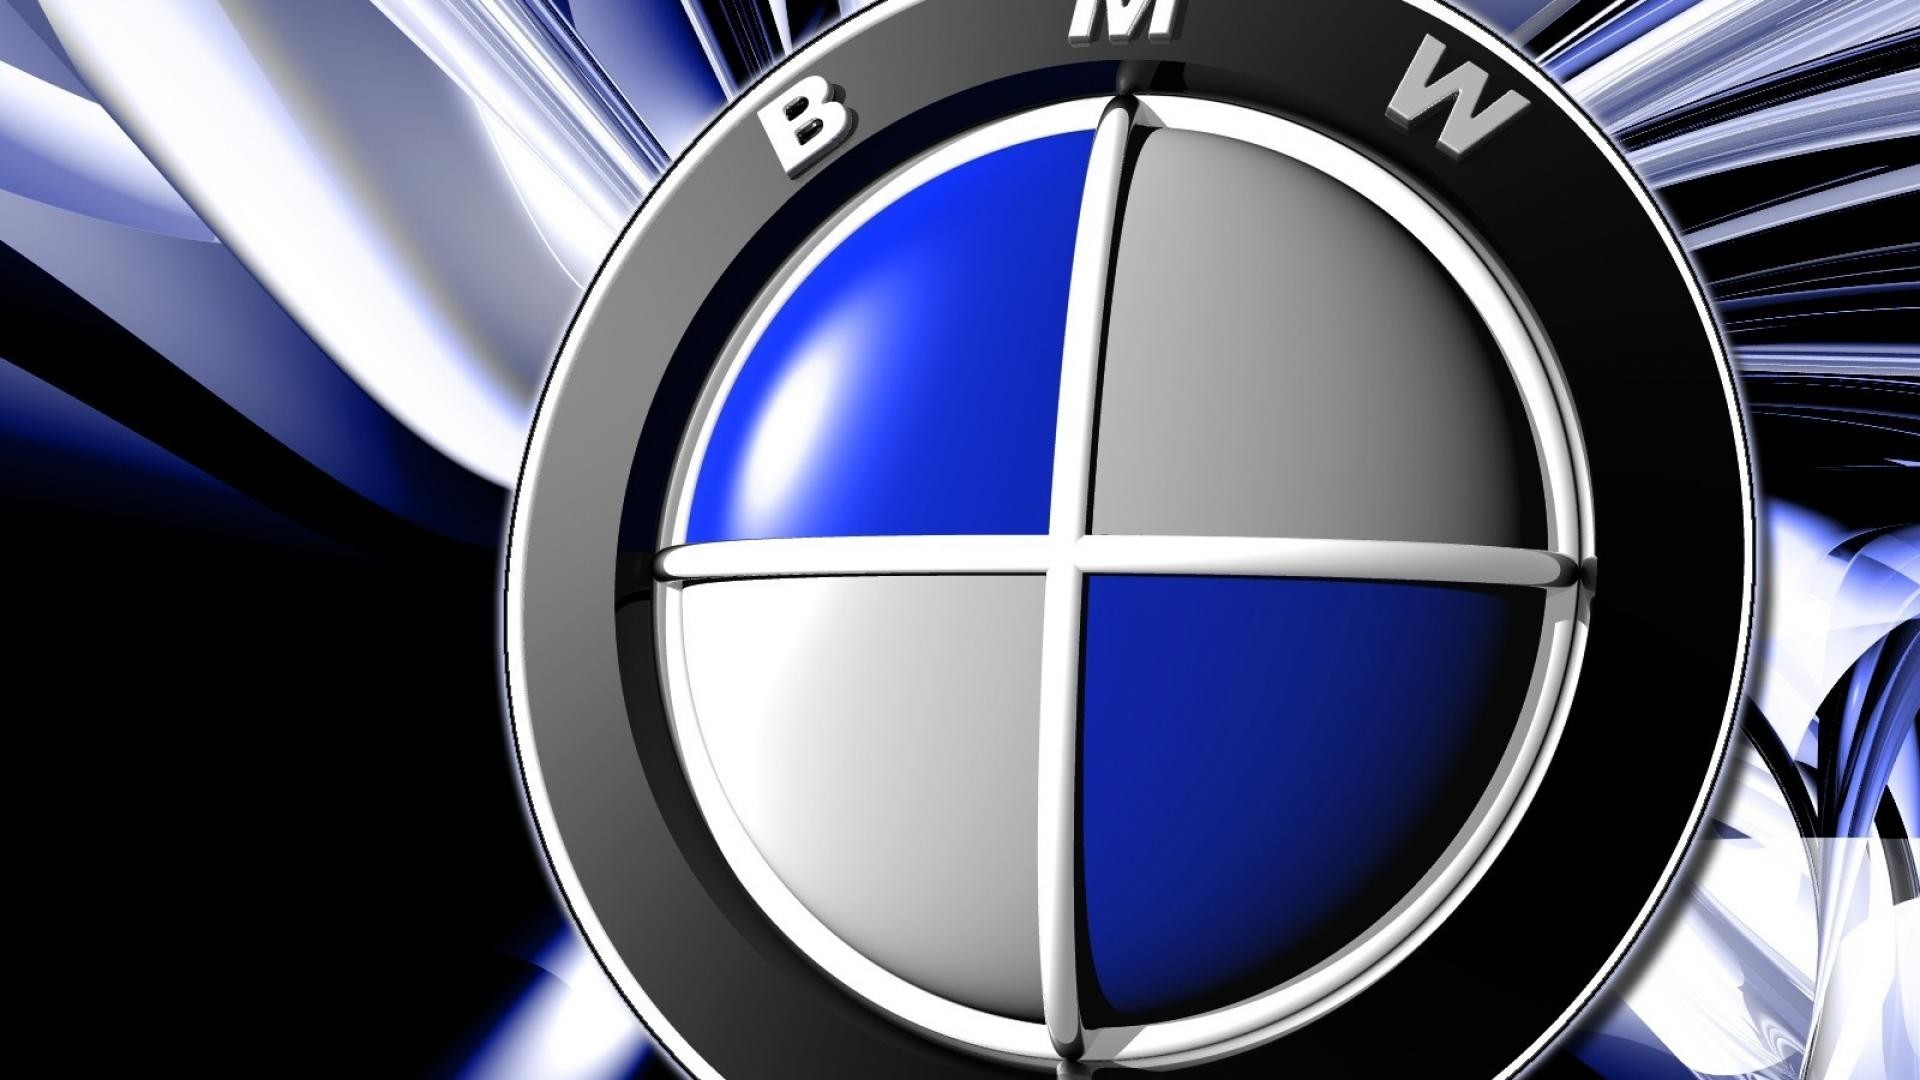 BMW-Florianchin-HD-Wallpapers